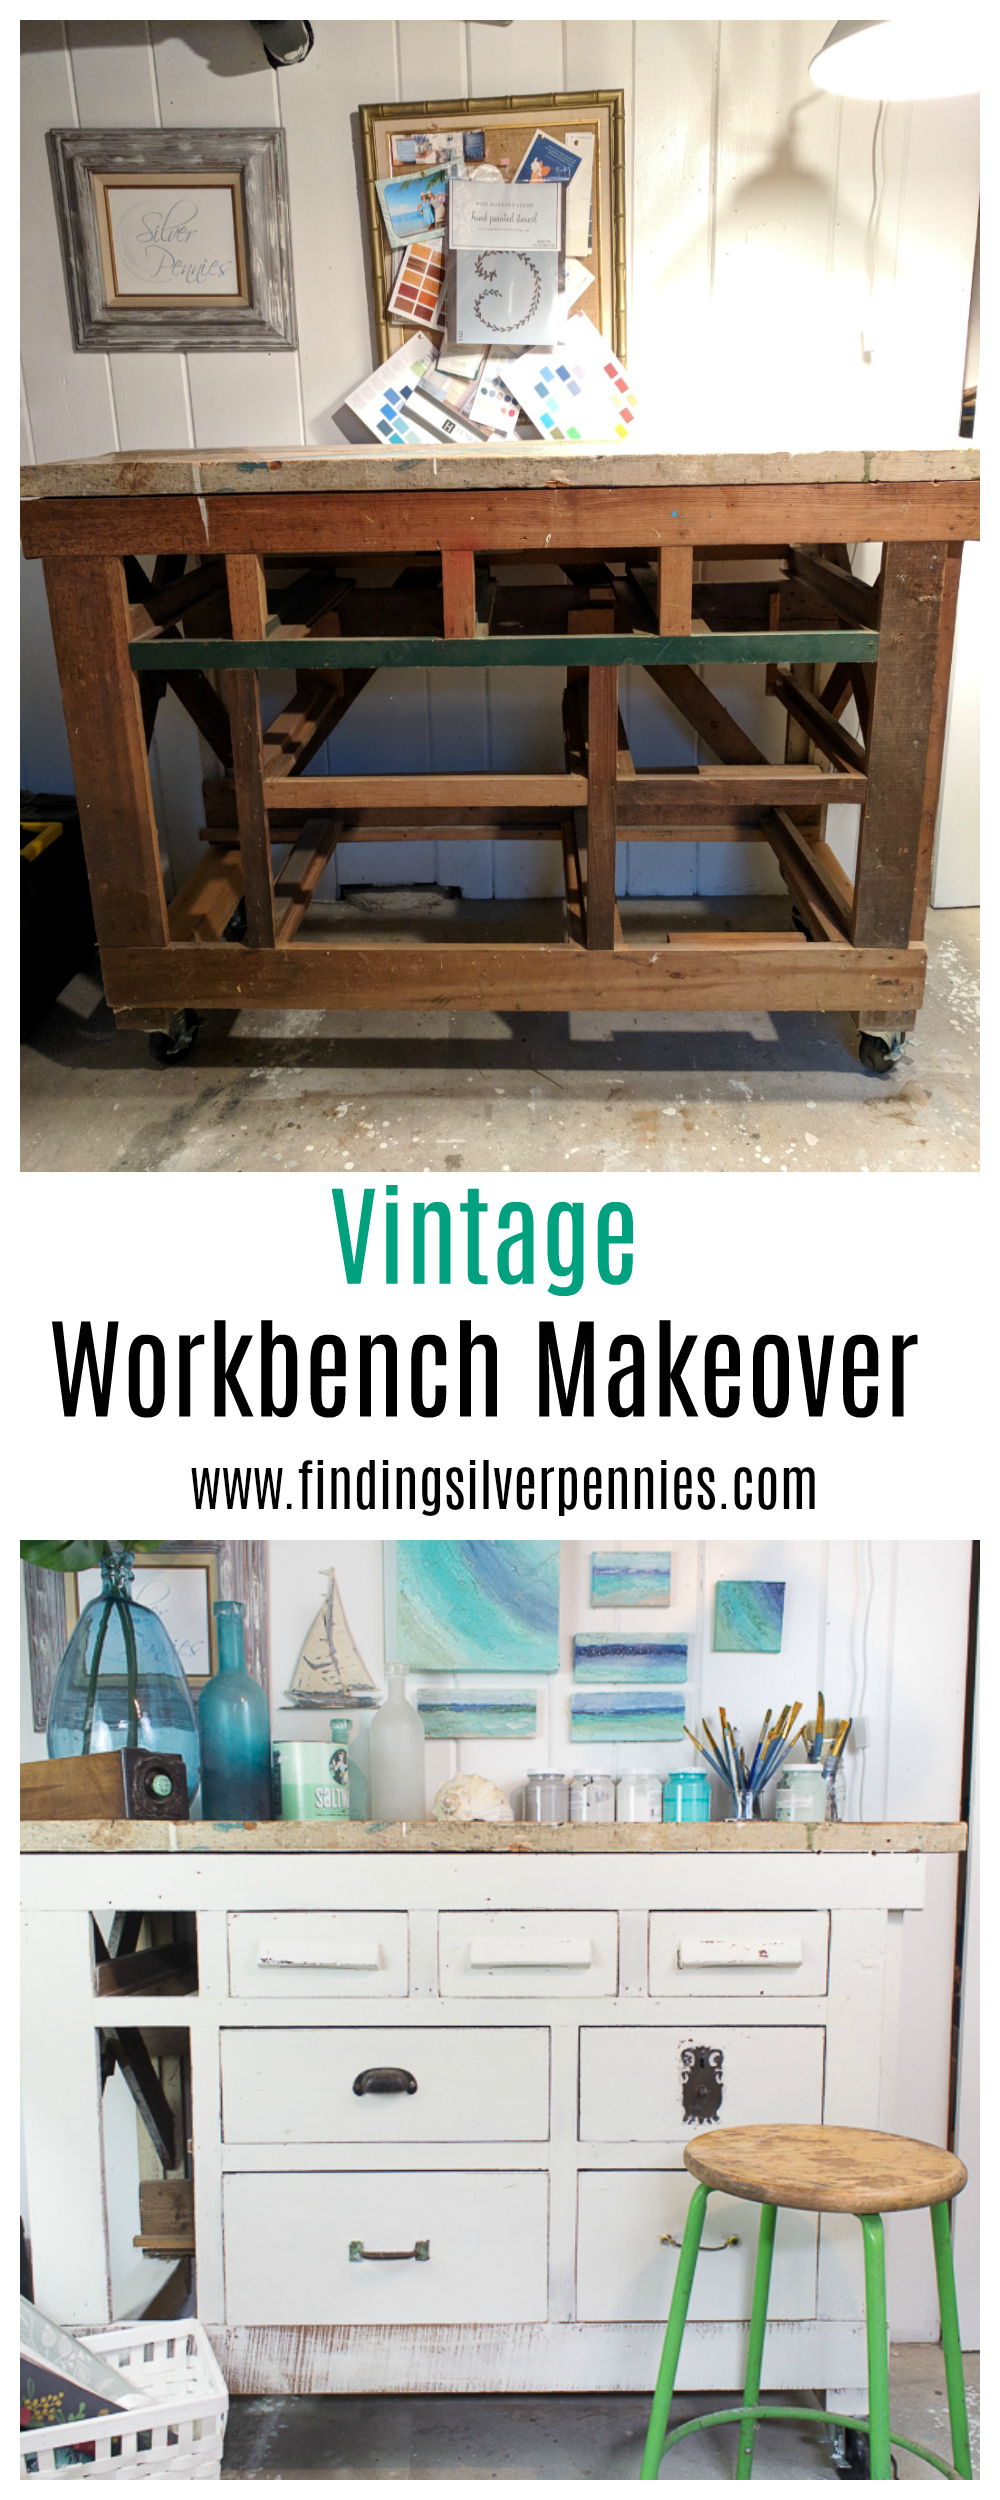 A Vintage Workbench Makeover with Milk Paint I Finding Silver Pennies